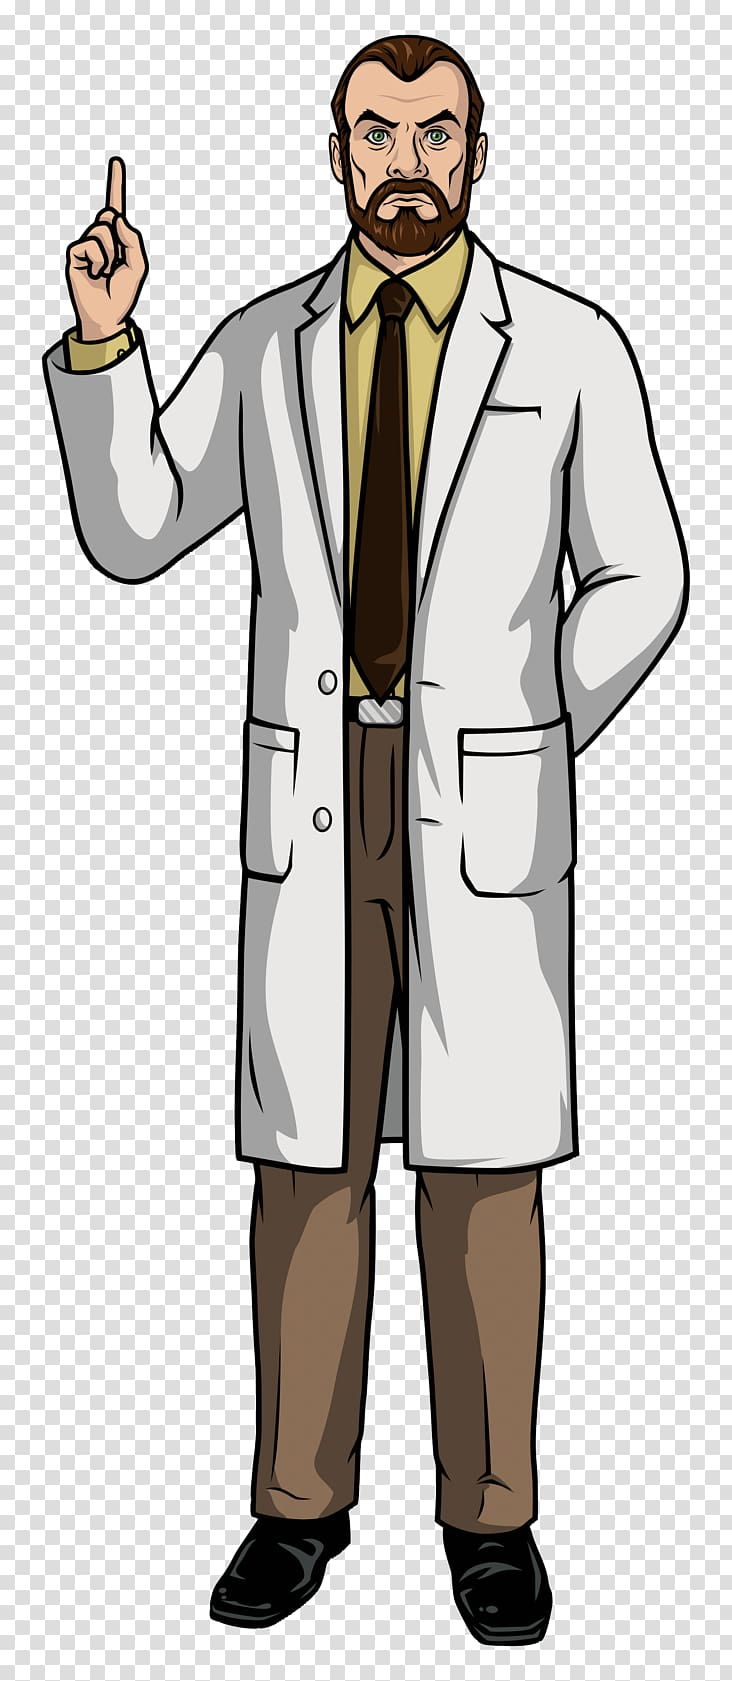 Doctor suit clipart graphic transparent download Lucky Yates Dr Krieger Sterling Archer Doctor, archer transparent ... graphic transparent download